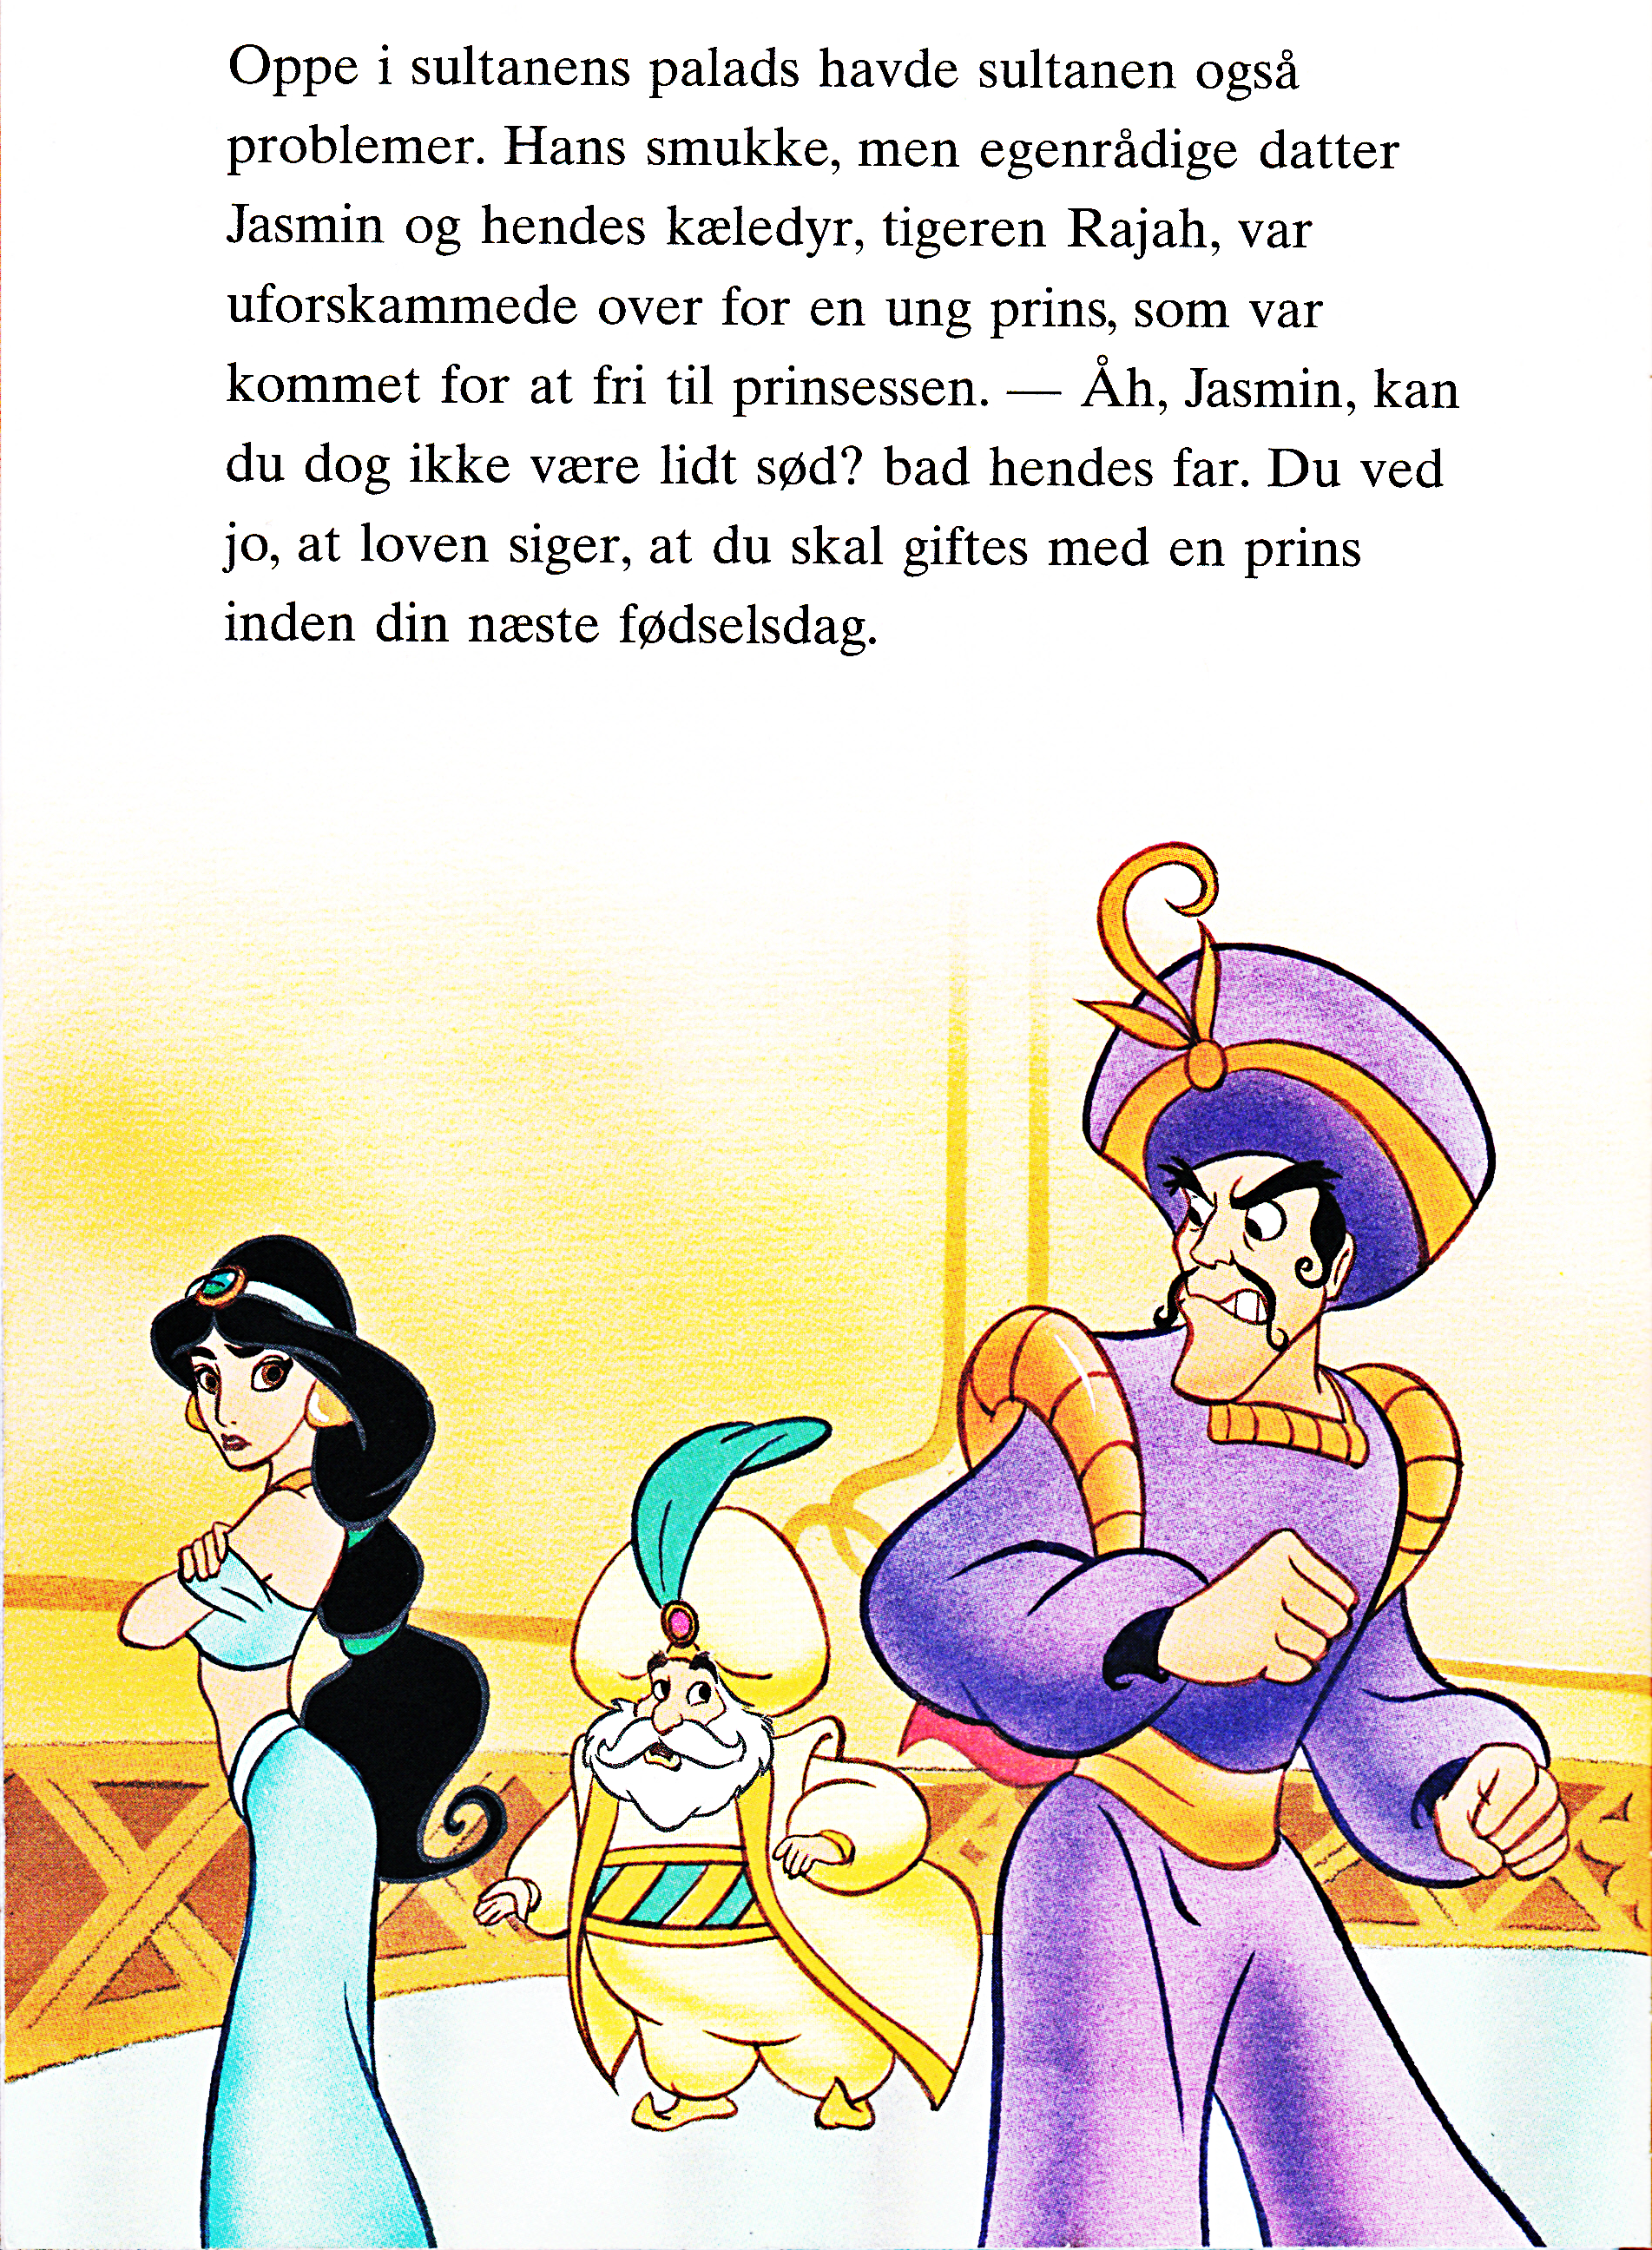 Walt Disney Book Images - Princess Jasmine, The Sultan & Prince Achmed